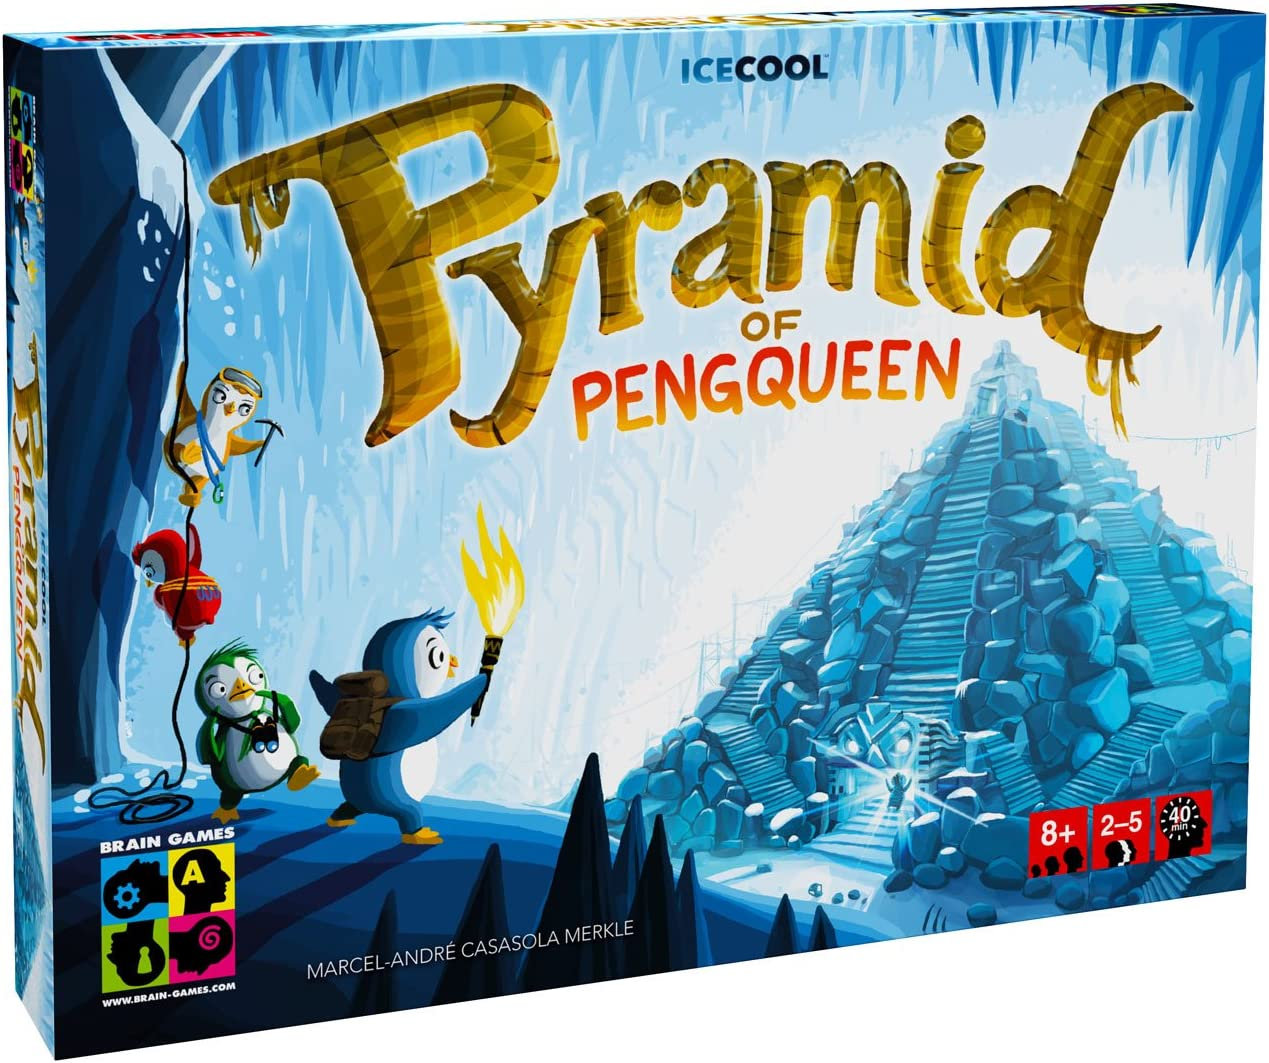 BRAIN GAMES Pyramid of Pengqueen 3D Board Game - A Thrilling Hide & Seek Game - Award Winning Strategy Game for Children, Families & Casual Gamers, Blue